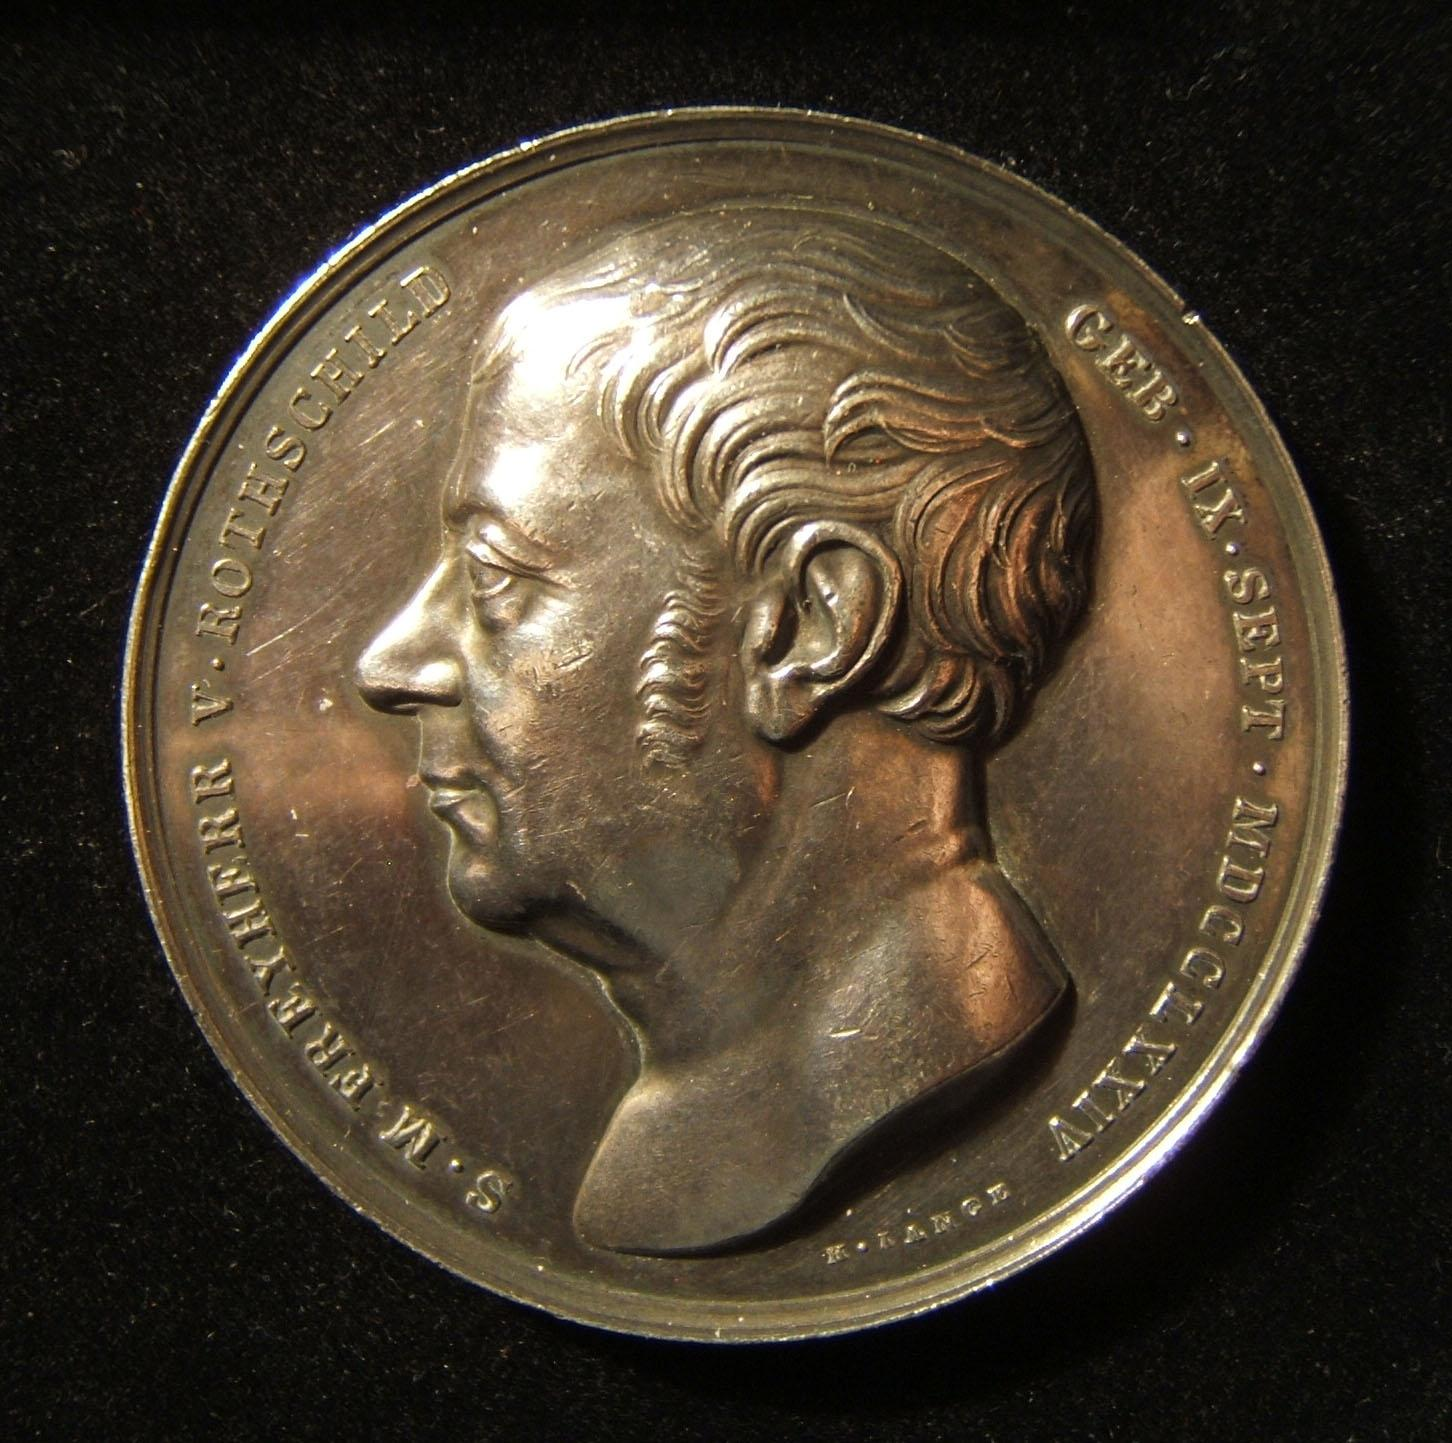 Austria-Hungary: Salomon Rothschild 70th birthday silver medal by Lange, 1844